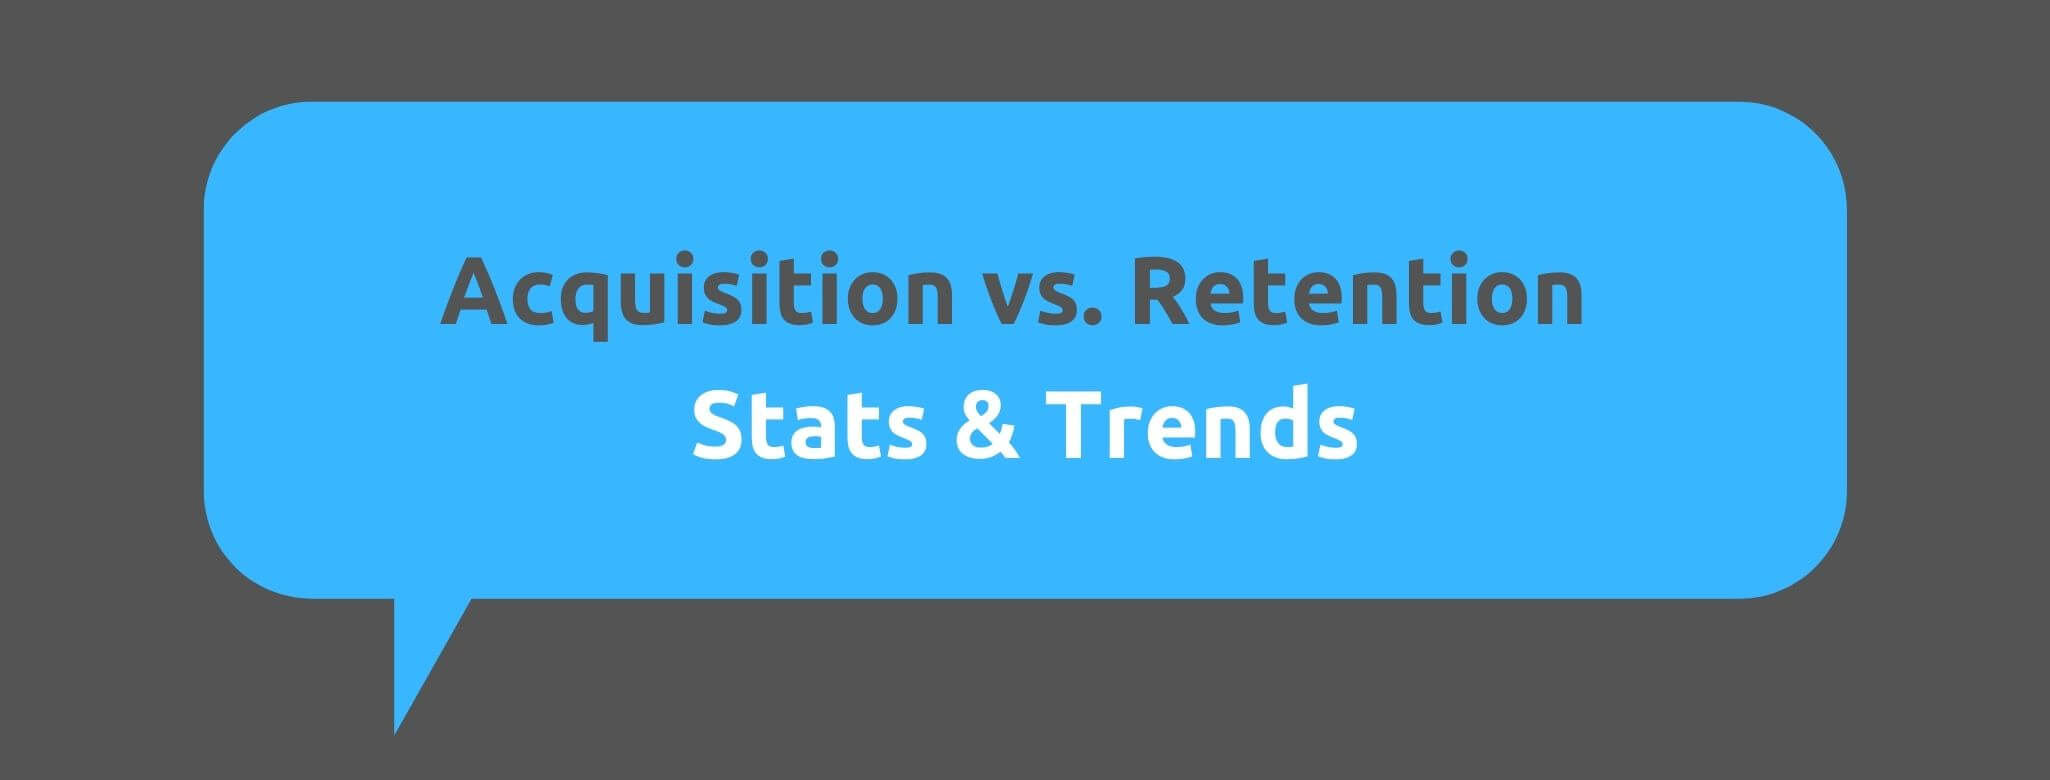 Acquisition vs. Retention Stats & Trends - Customer Acquisition vs. Customer Retention - Replyco Helpdesk Software for eCommerce